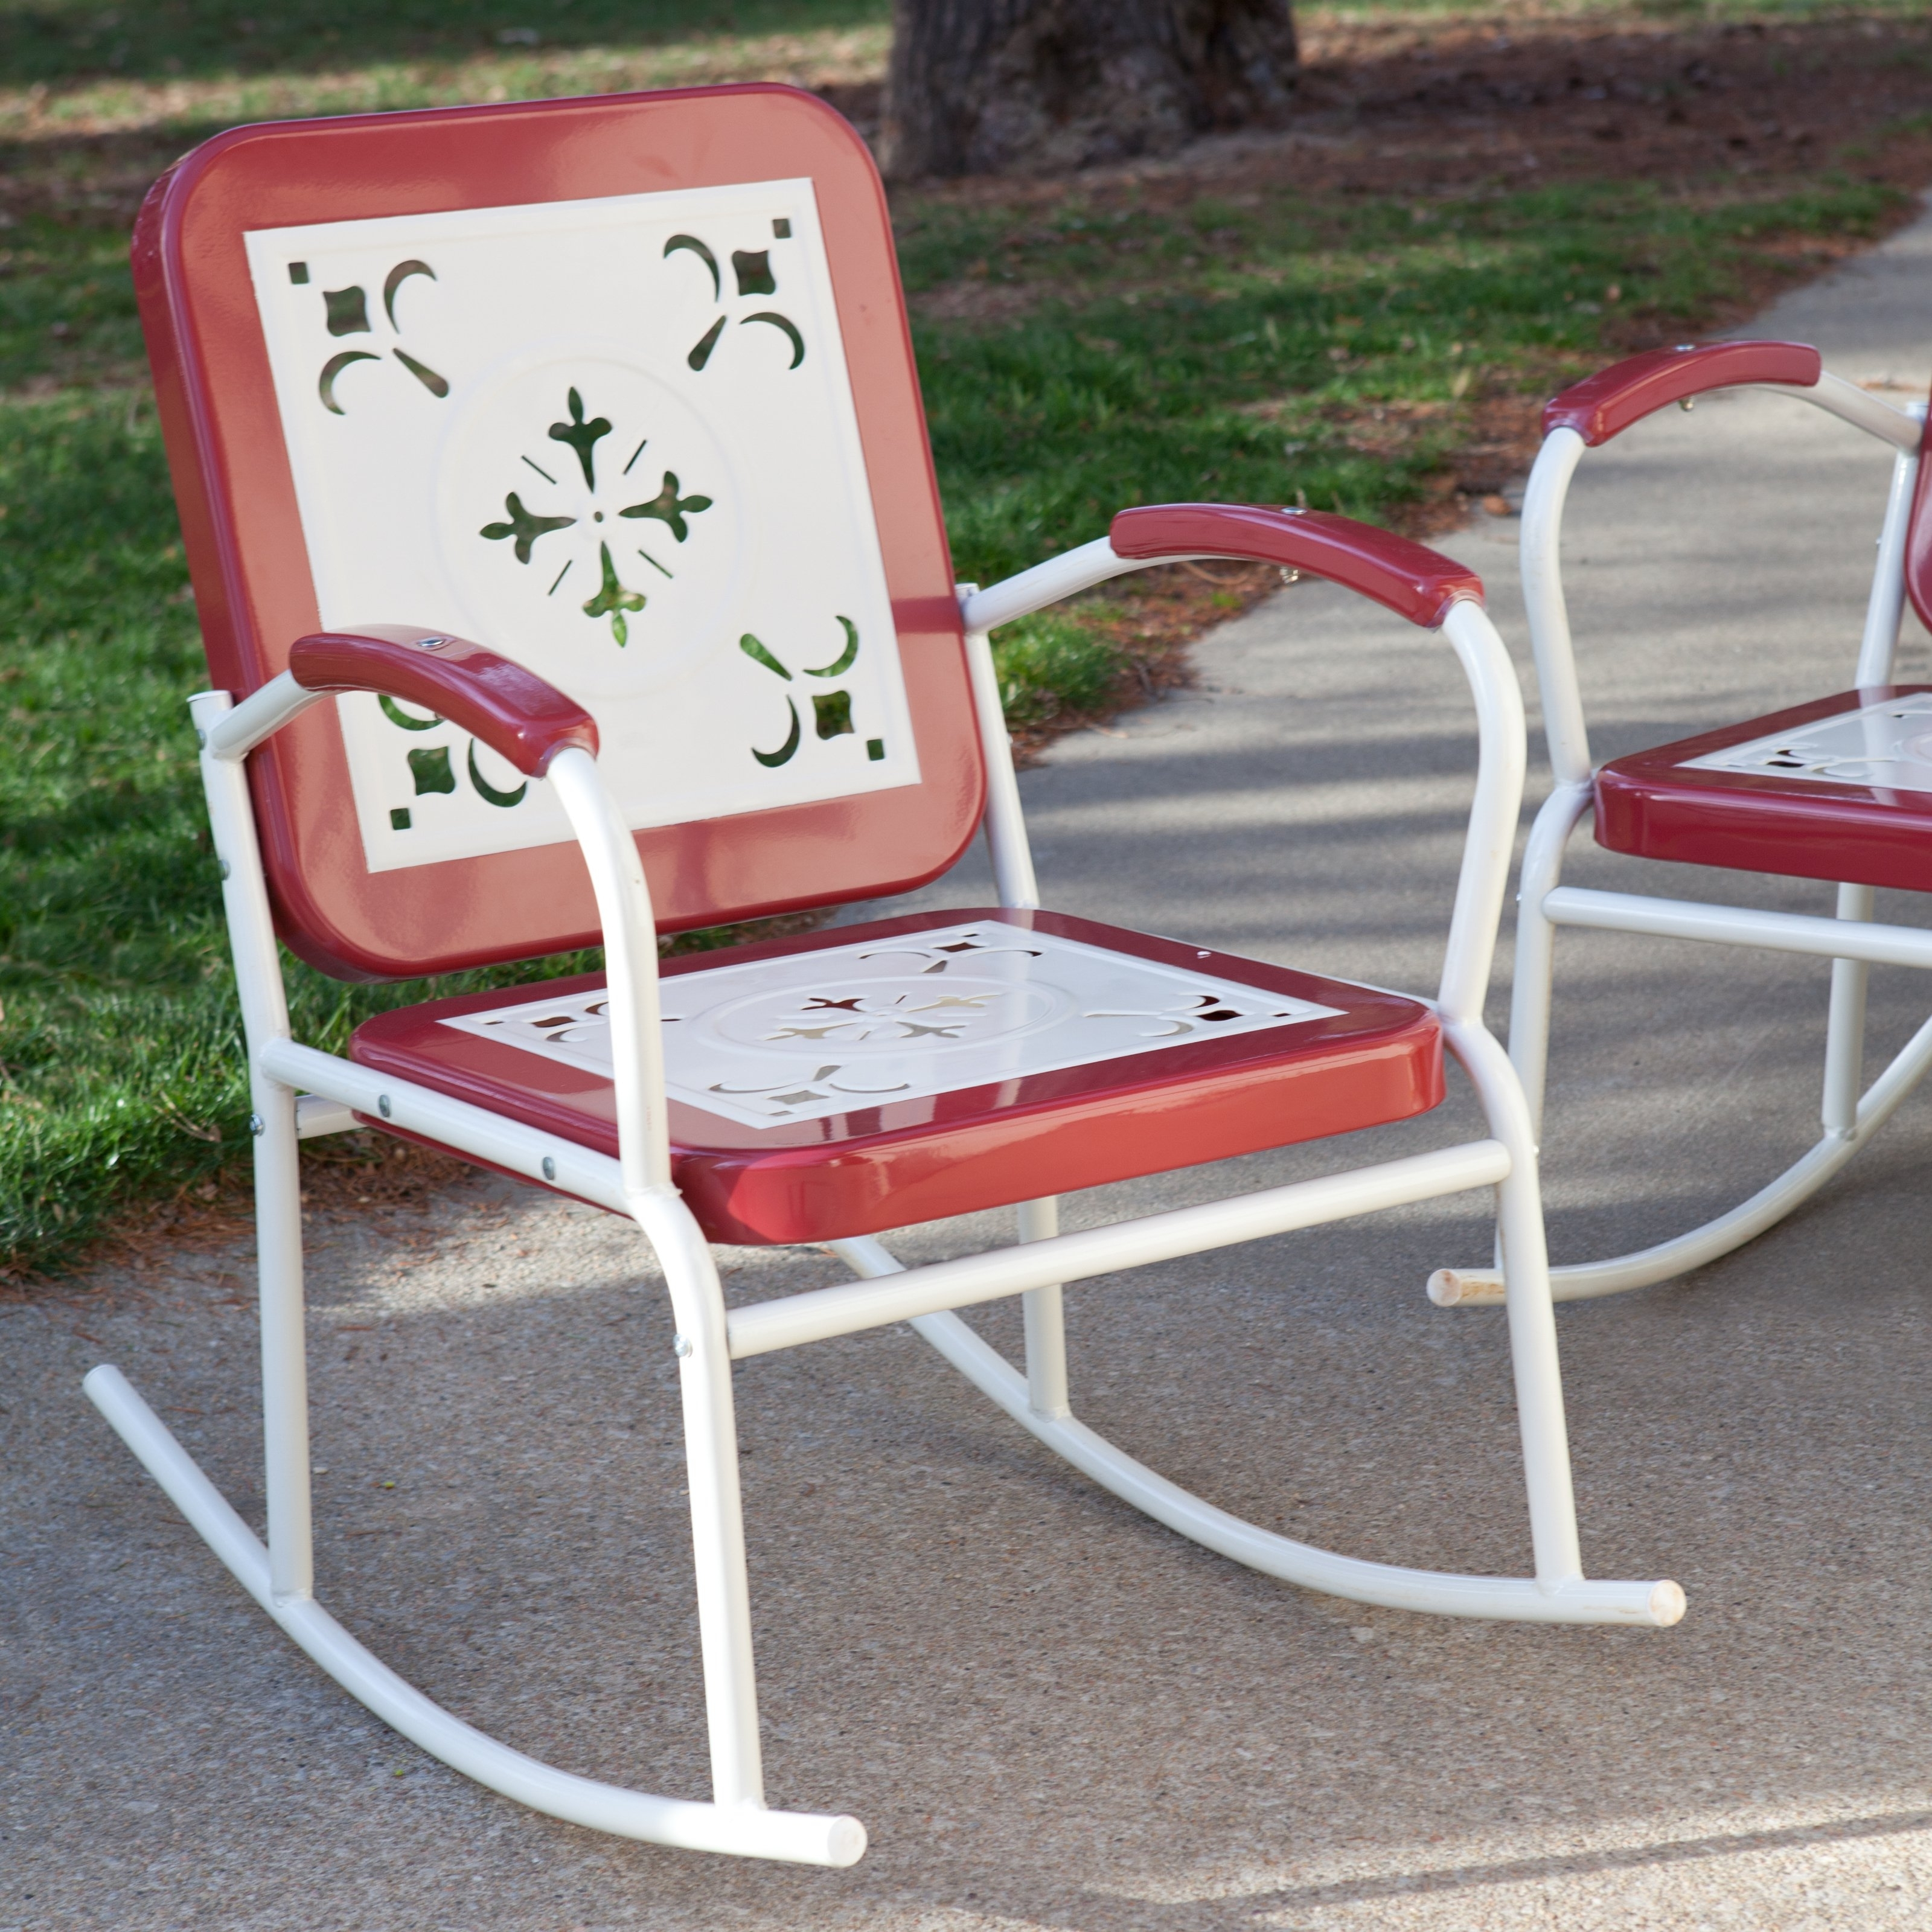 Vintage Metal Rocking Patio Chairs Intended For Well Liked Old Metal Outdoor Rocking Chairs – Outdoor Designs (Gallery 1 of 20)